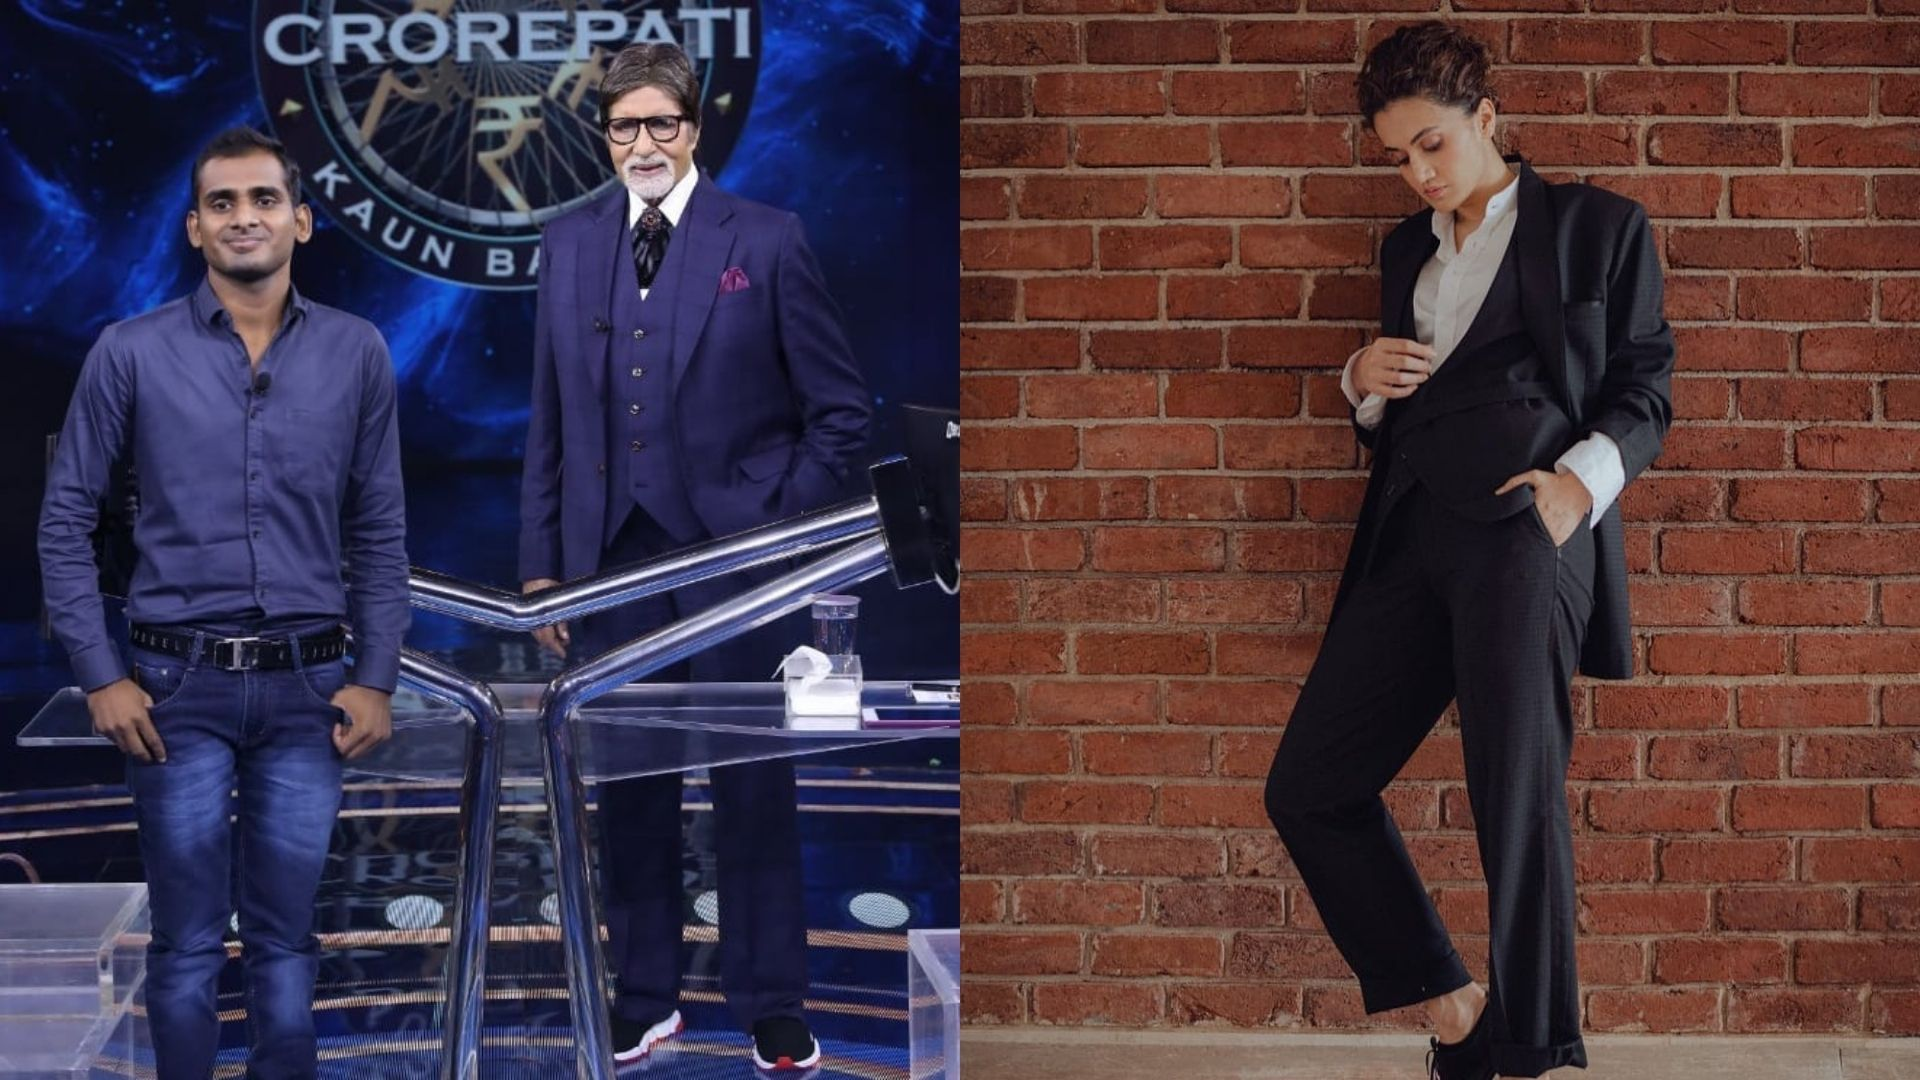 KBC 13: 2nd Crorepati Winner Sahil Ahirwar Reacts To Taapsee Pannu's Tweet For Him; His Comment Will Melt Your Heart